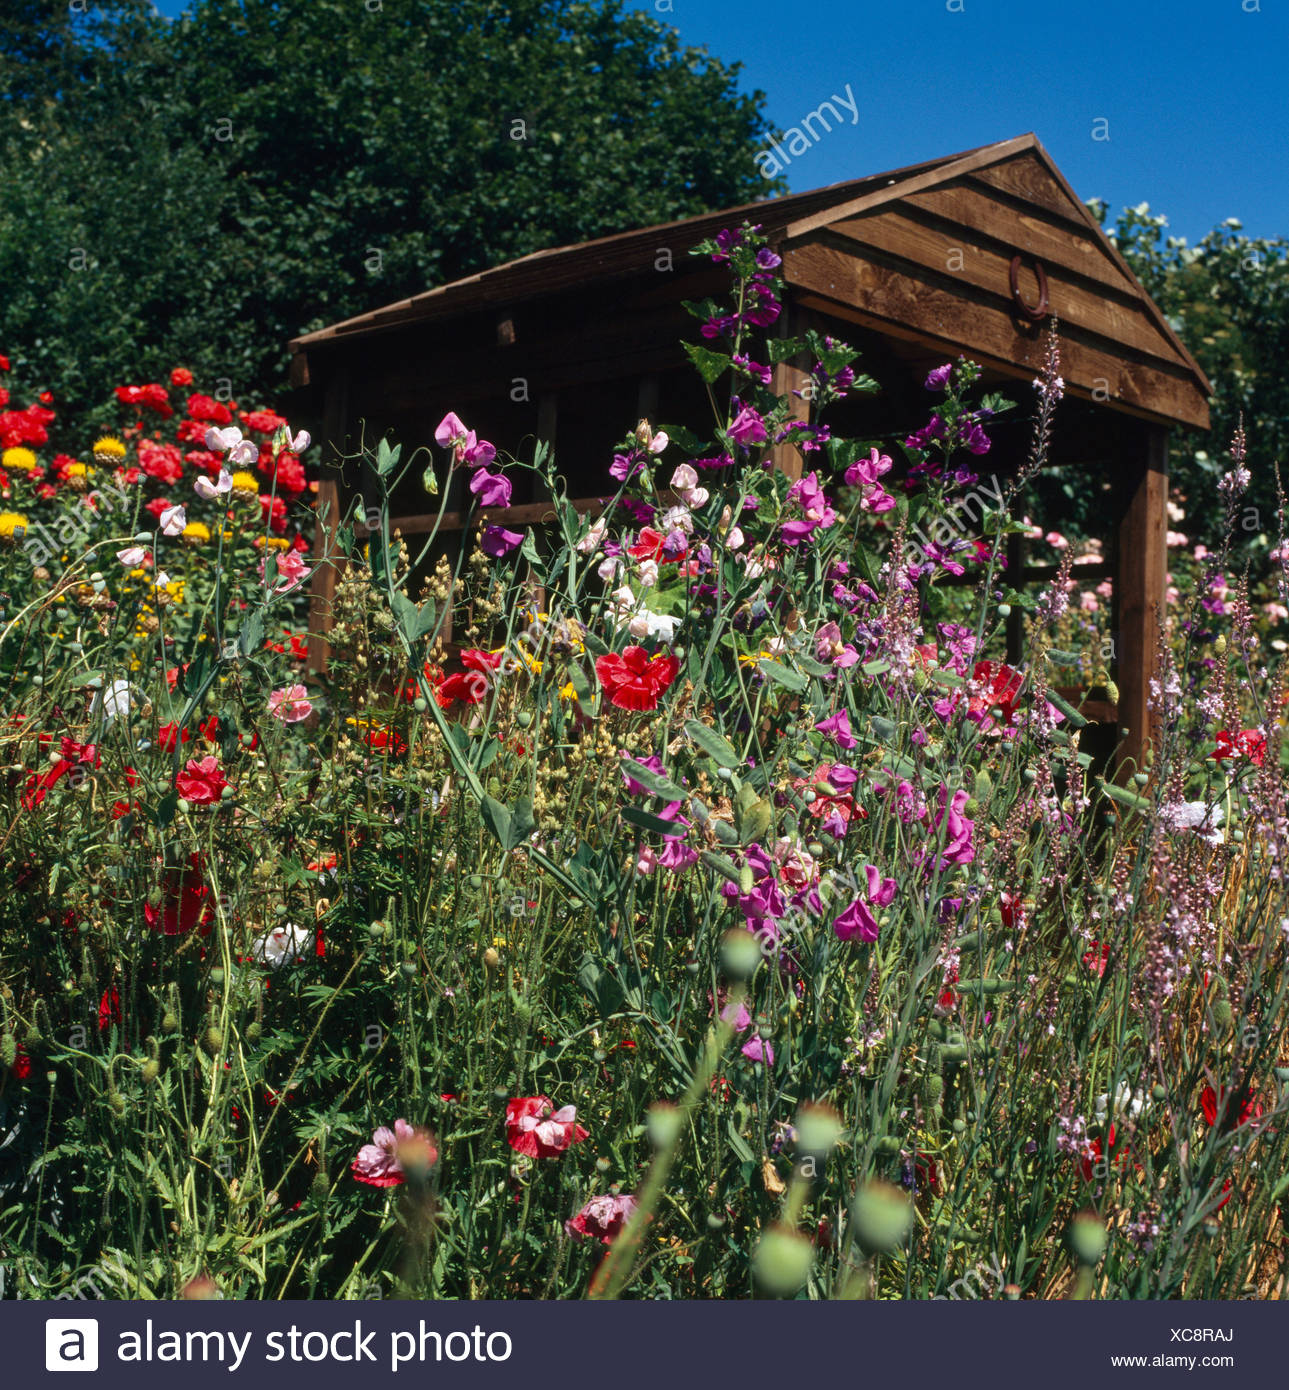 Red summer flowering annuals and pink perennial pea on bank in front red summer flowering annuals and pink perennial pea on bank in front of wooden shed in country garden izmirmasajfo